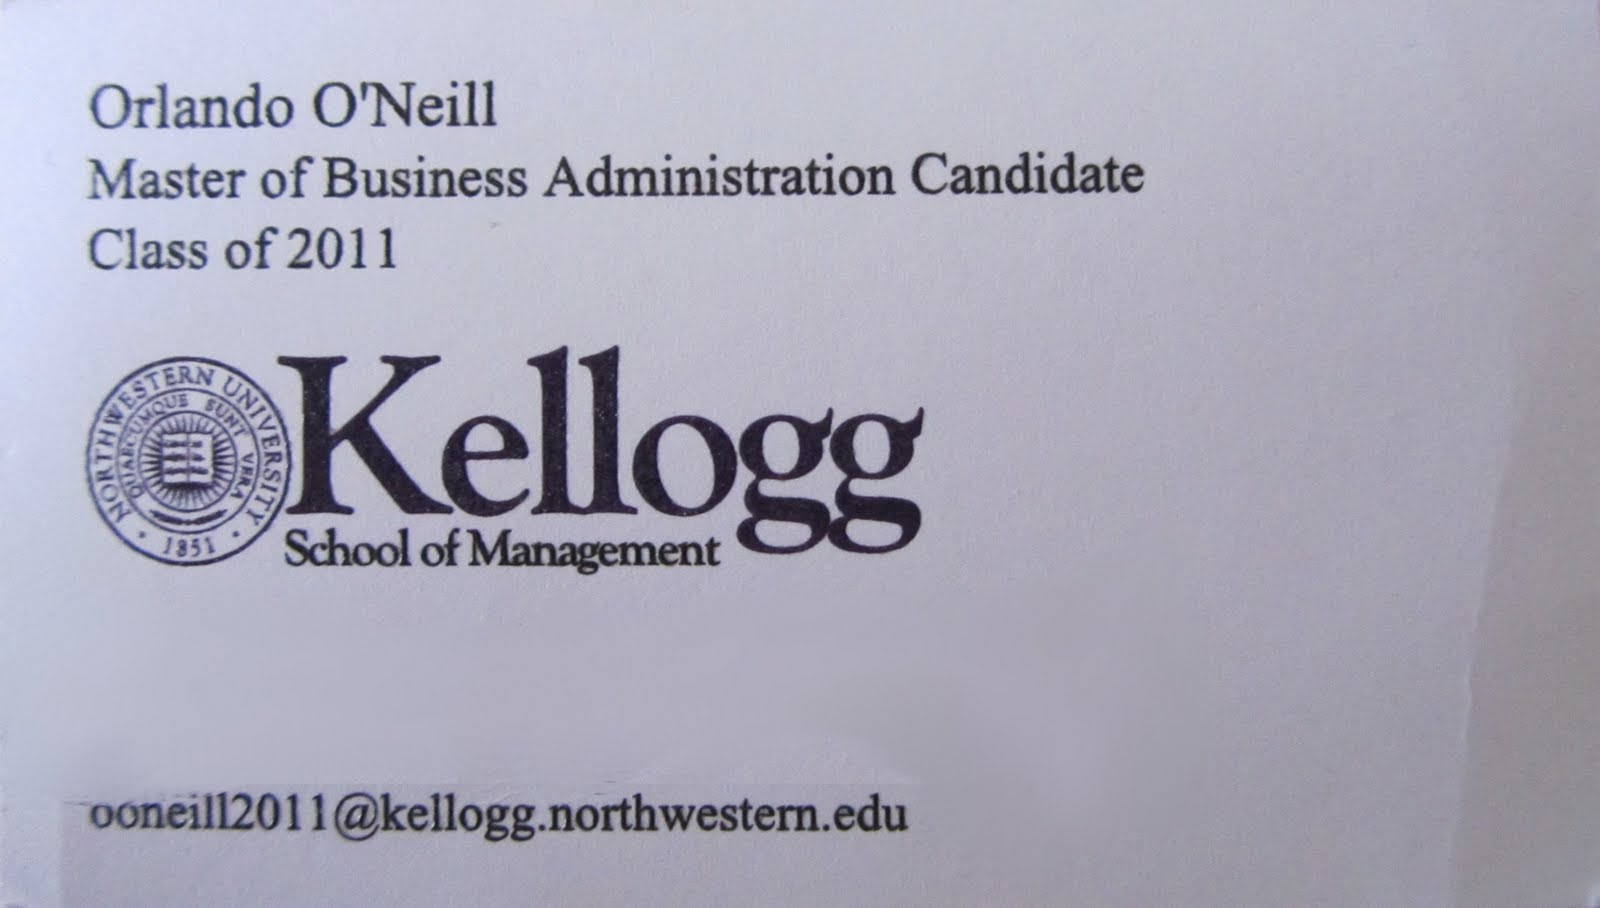 Kellogg mba class of 2011 networking post kellogg personal cards colourmoves